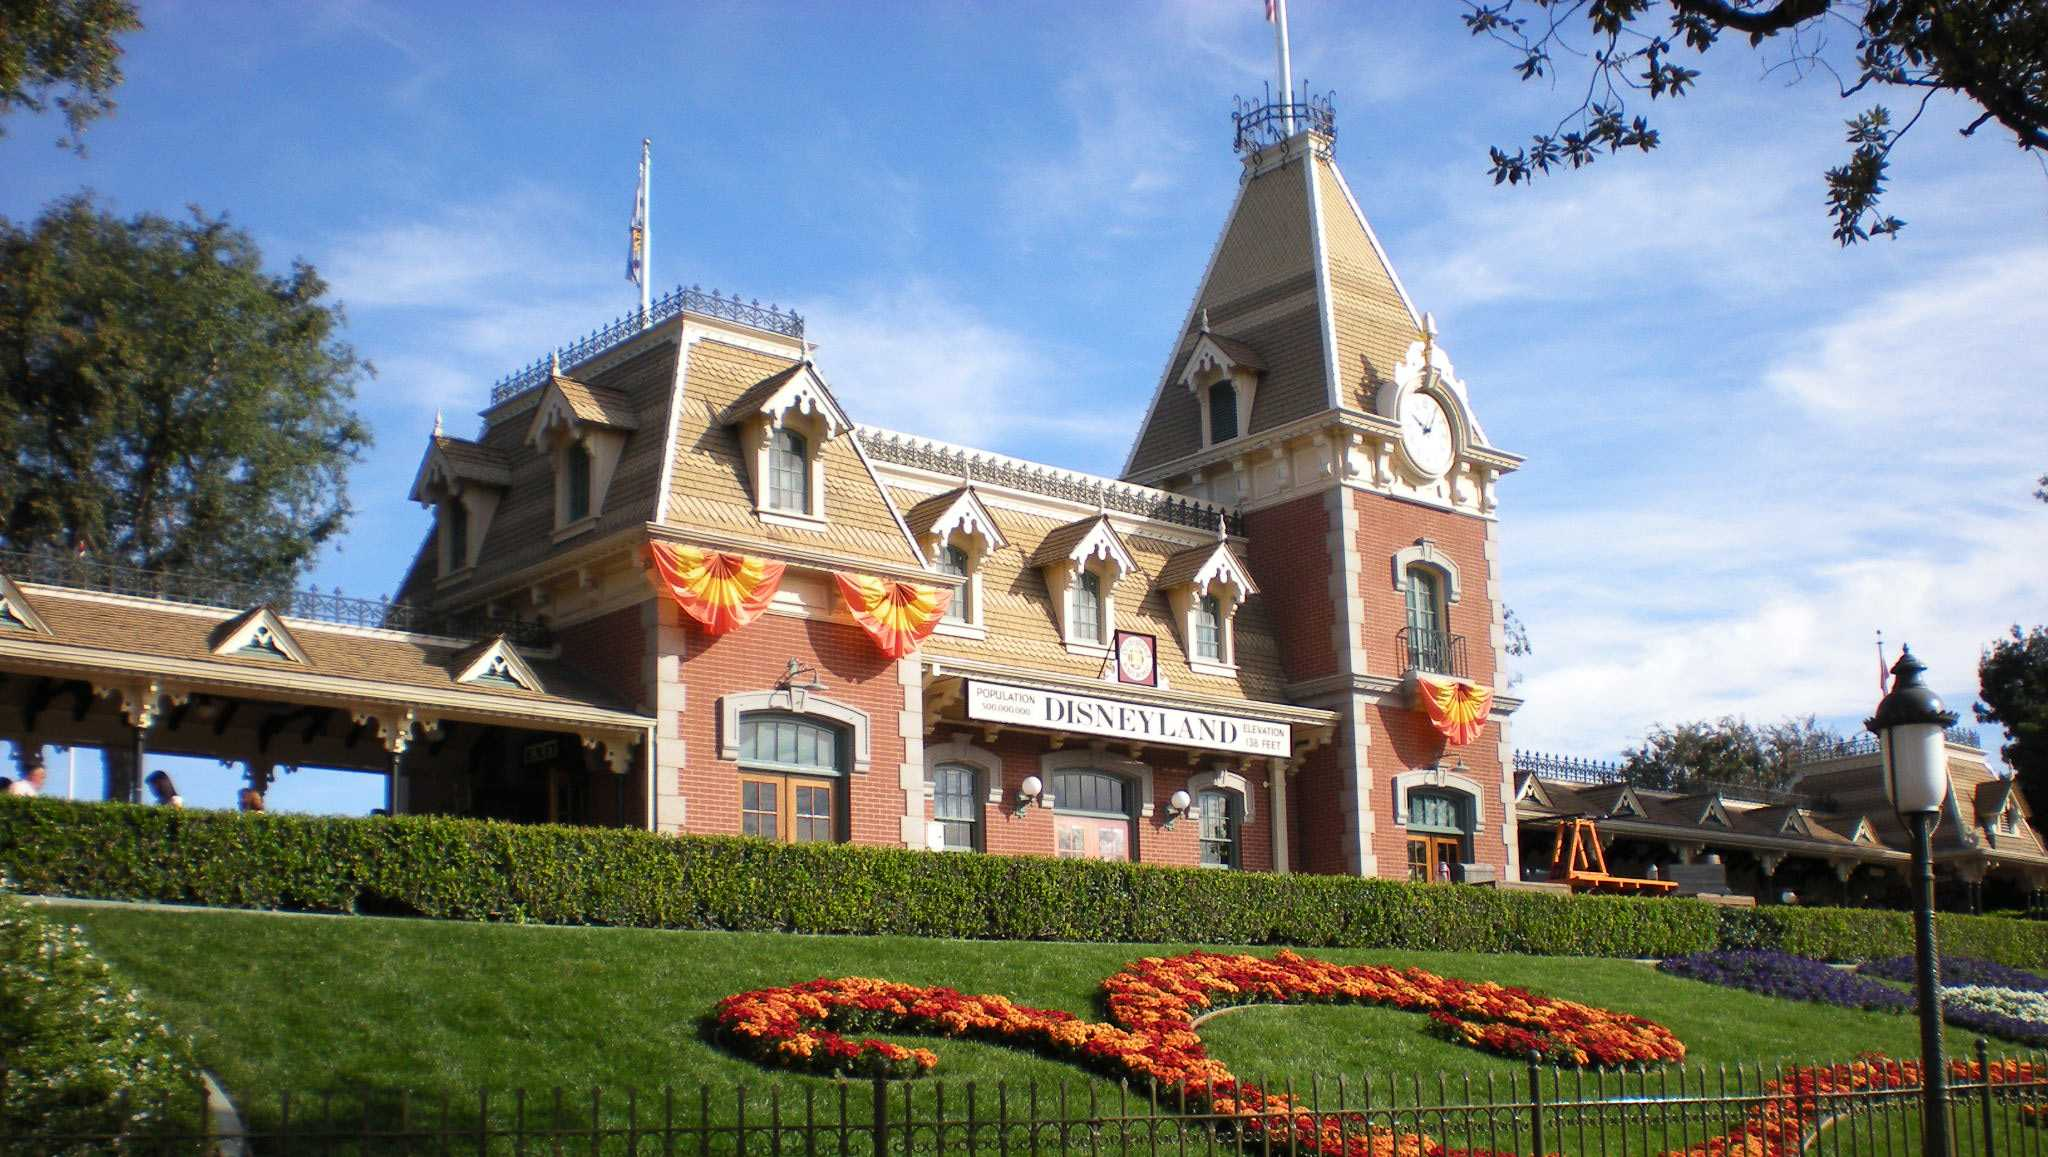 Disneyland file photo